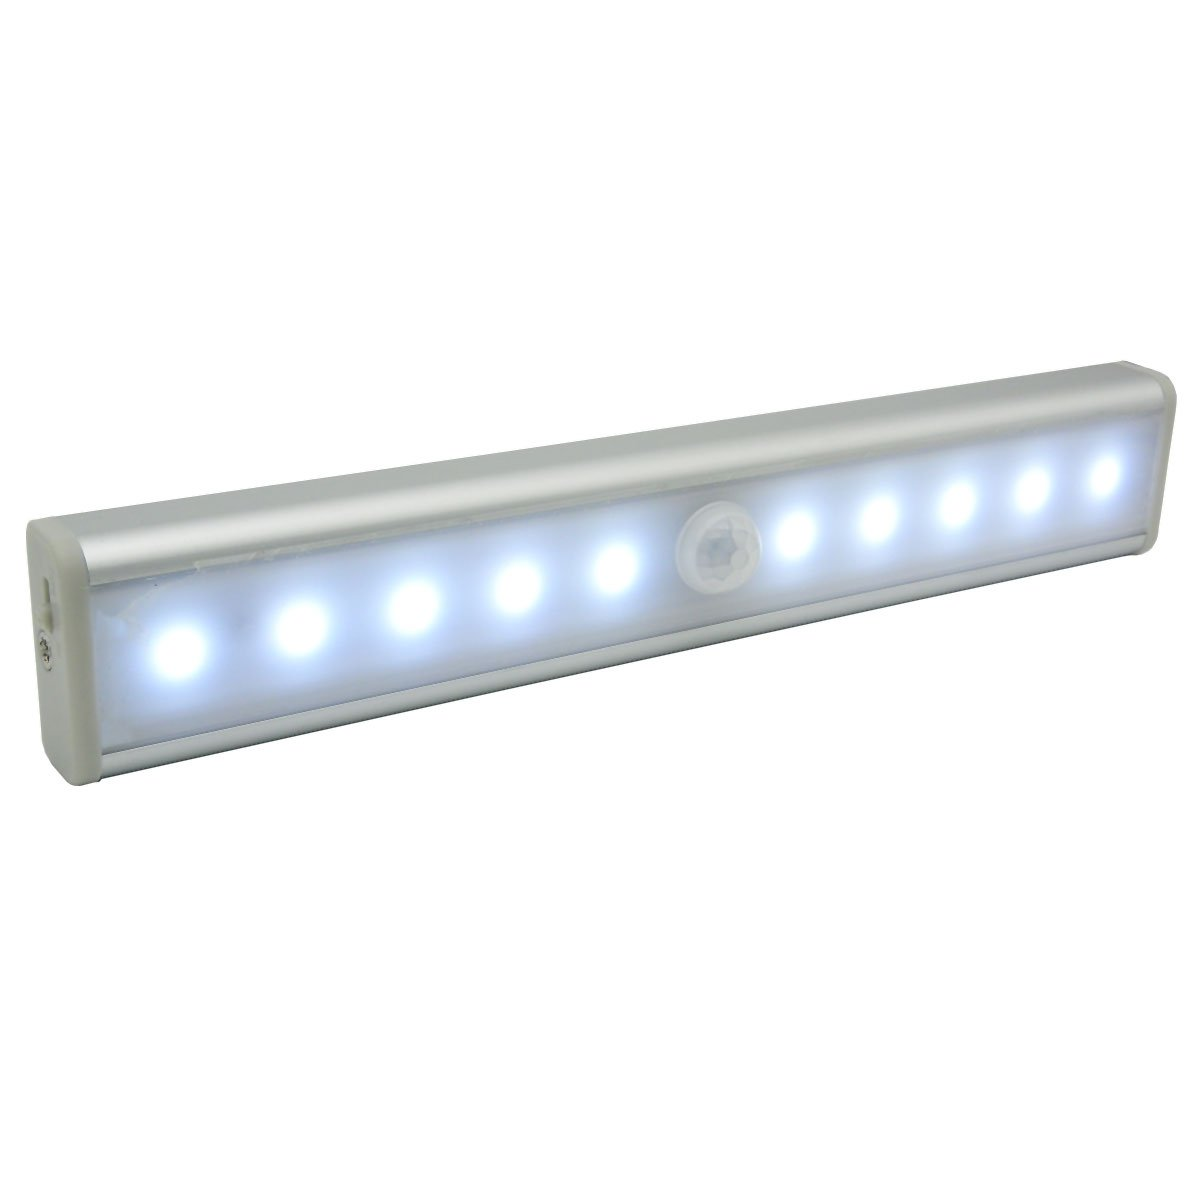 LED Under Cabinet Light Wireless Motion & Light Sensor 10 LED Wardrobe Lamp Bar - Rechargeable